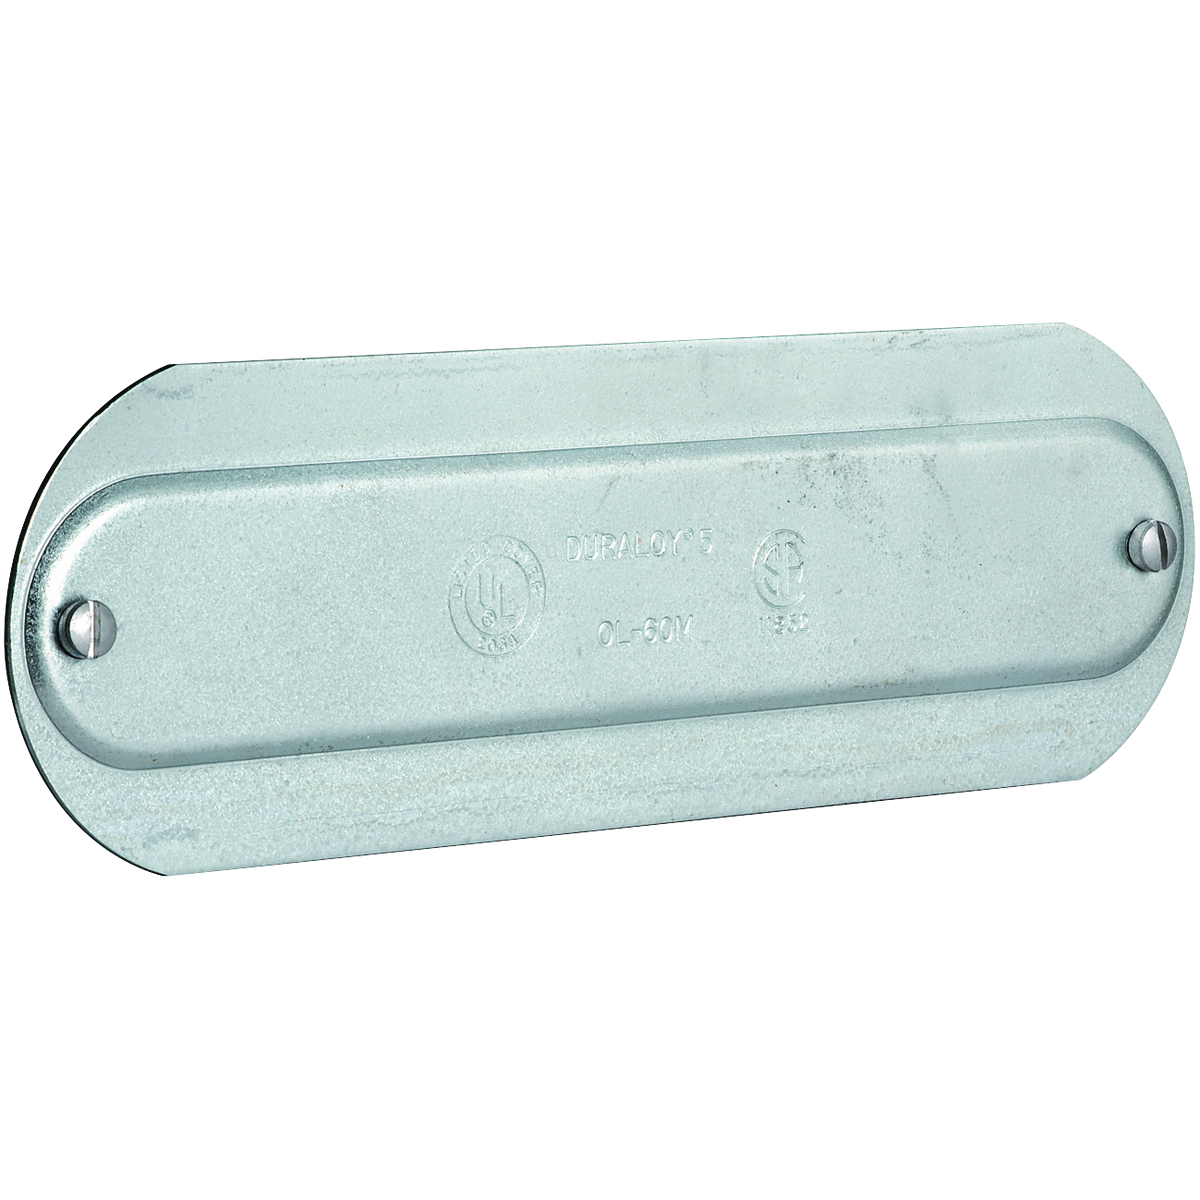 Hubbell OL-780 Conduit Body Cover